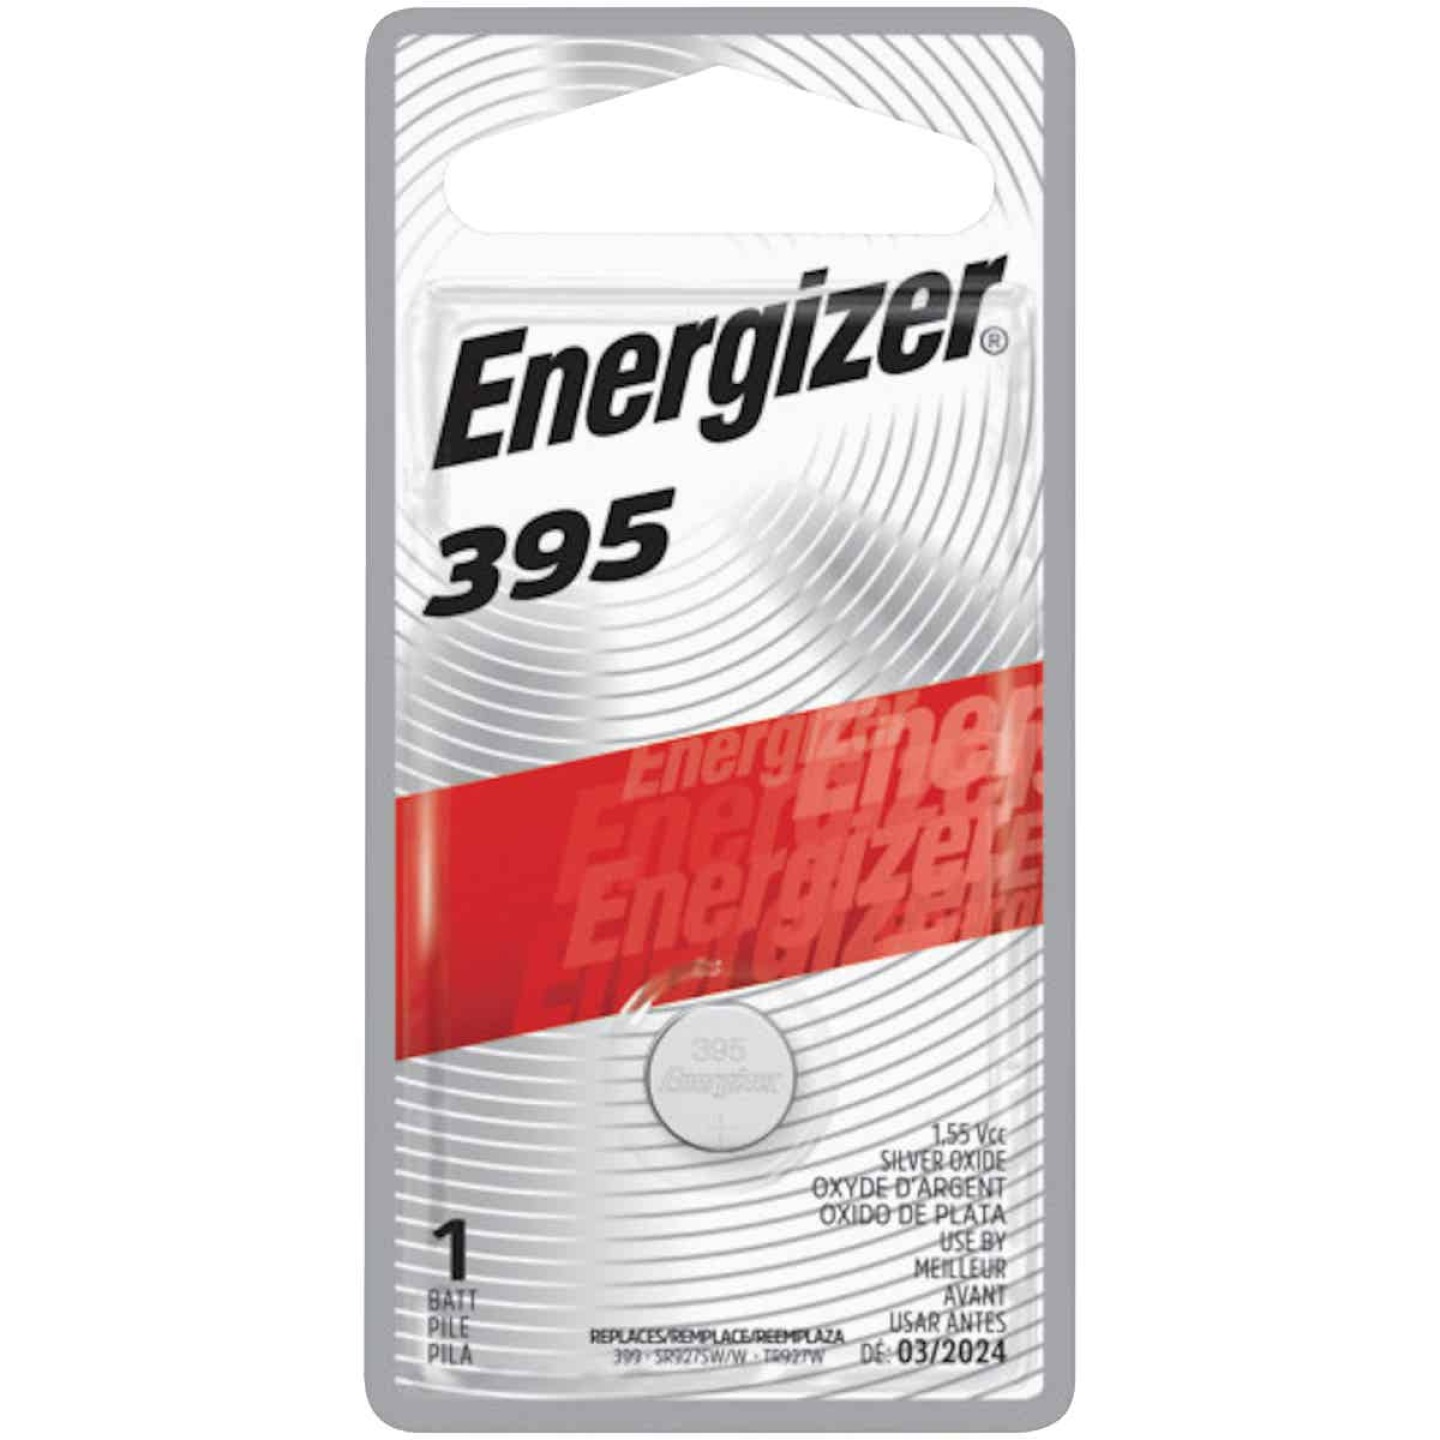 Energizer 395 Silver Oxide Button Cell Battery Image 1